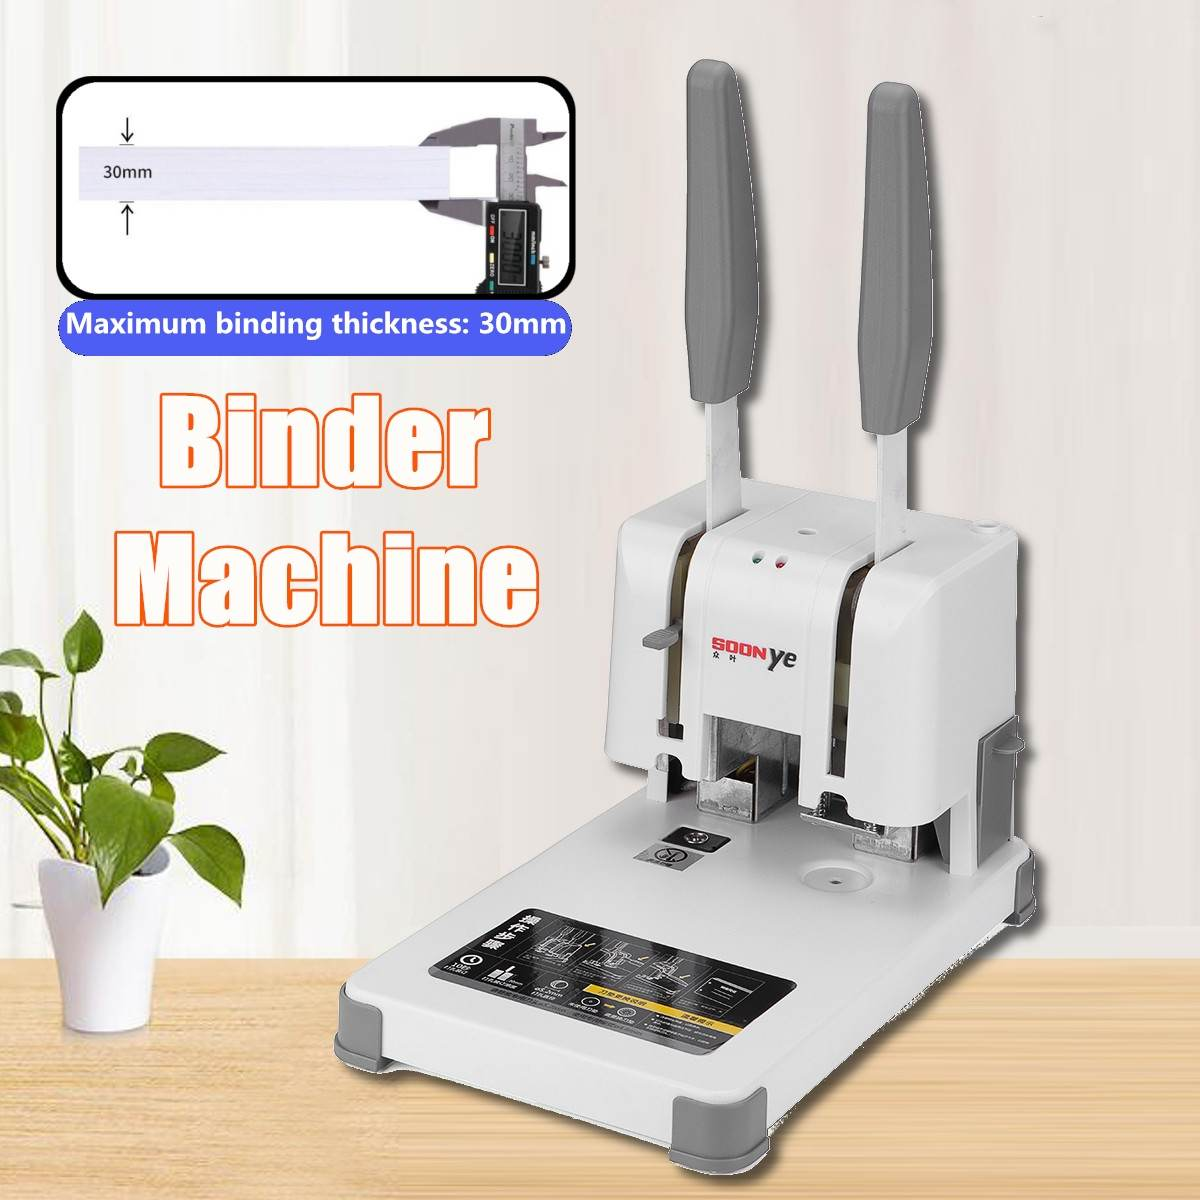 Hot Glue Book Binding Machine 220V Manual Hot Melt Glue Book Binder Clips Office School Electrical Device Binding Tools PartsHot Glue Book Binding Machine 220V Manual Hot Melt Glue Book Binder Clips Office School Electrical Device Binding Tools Parts